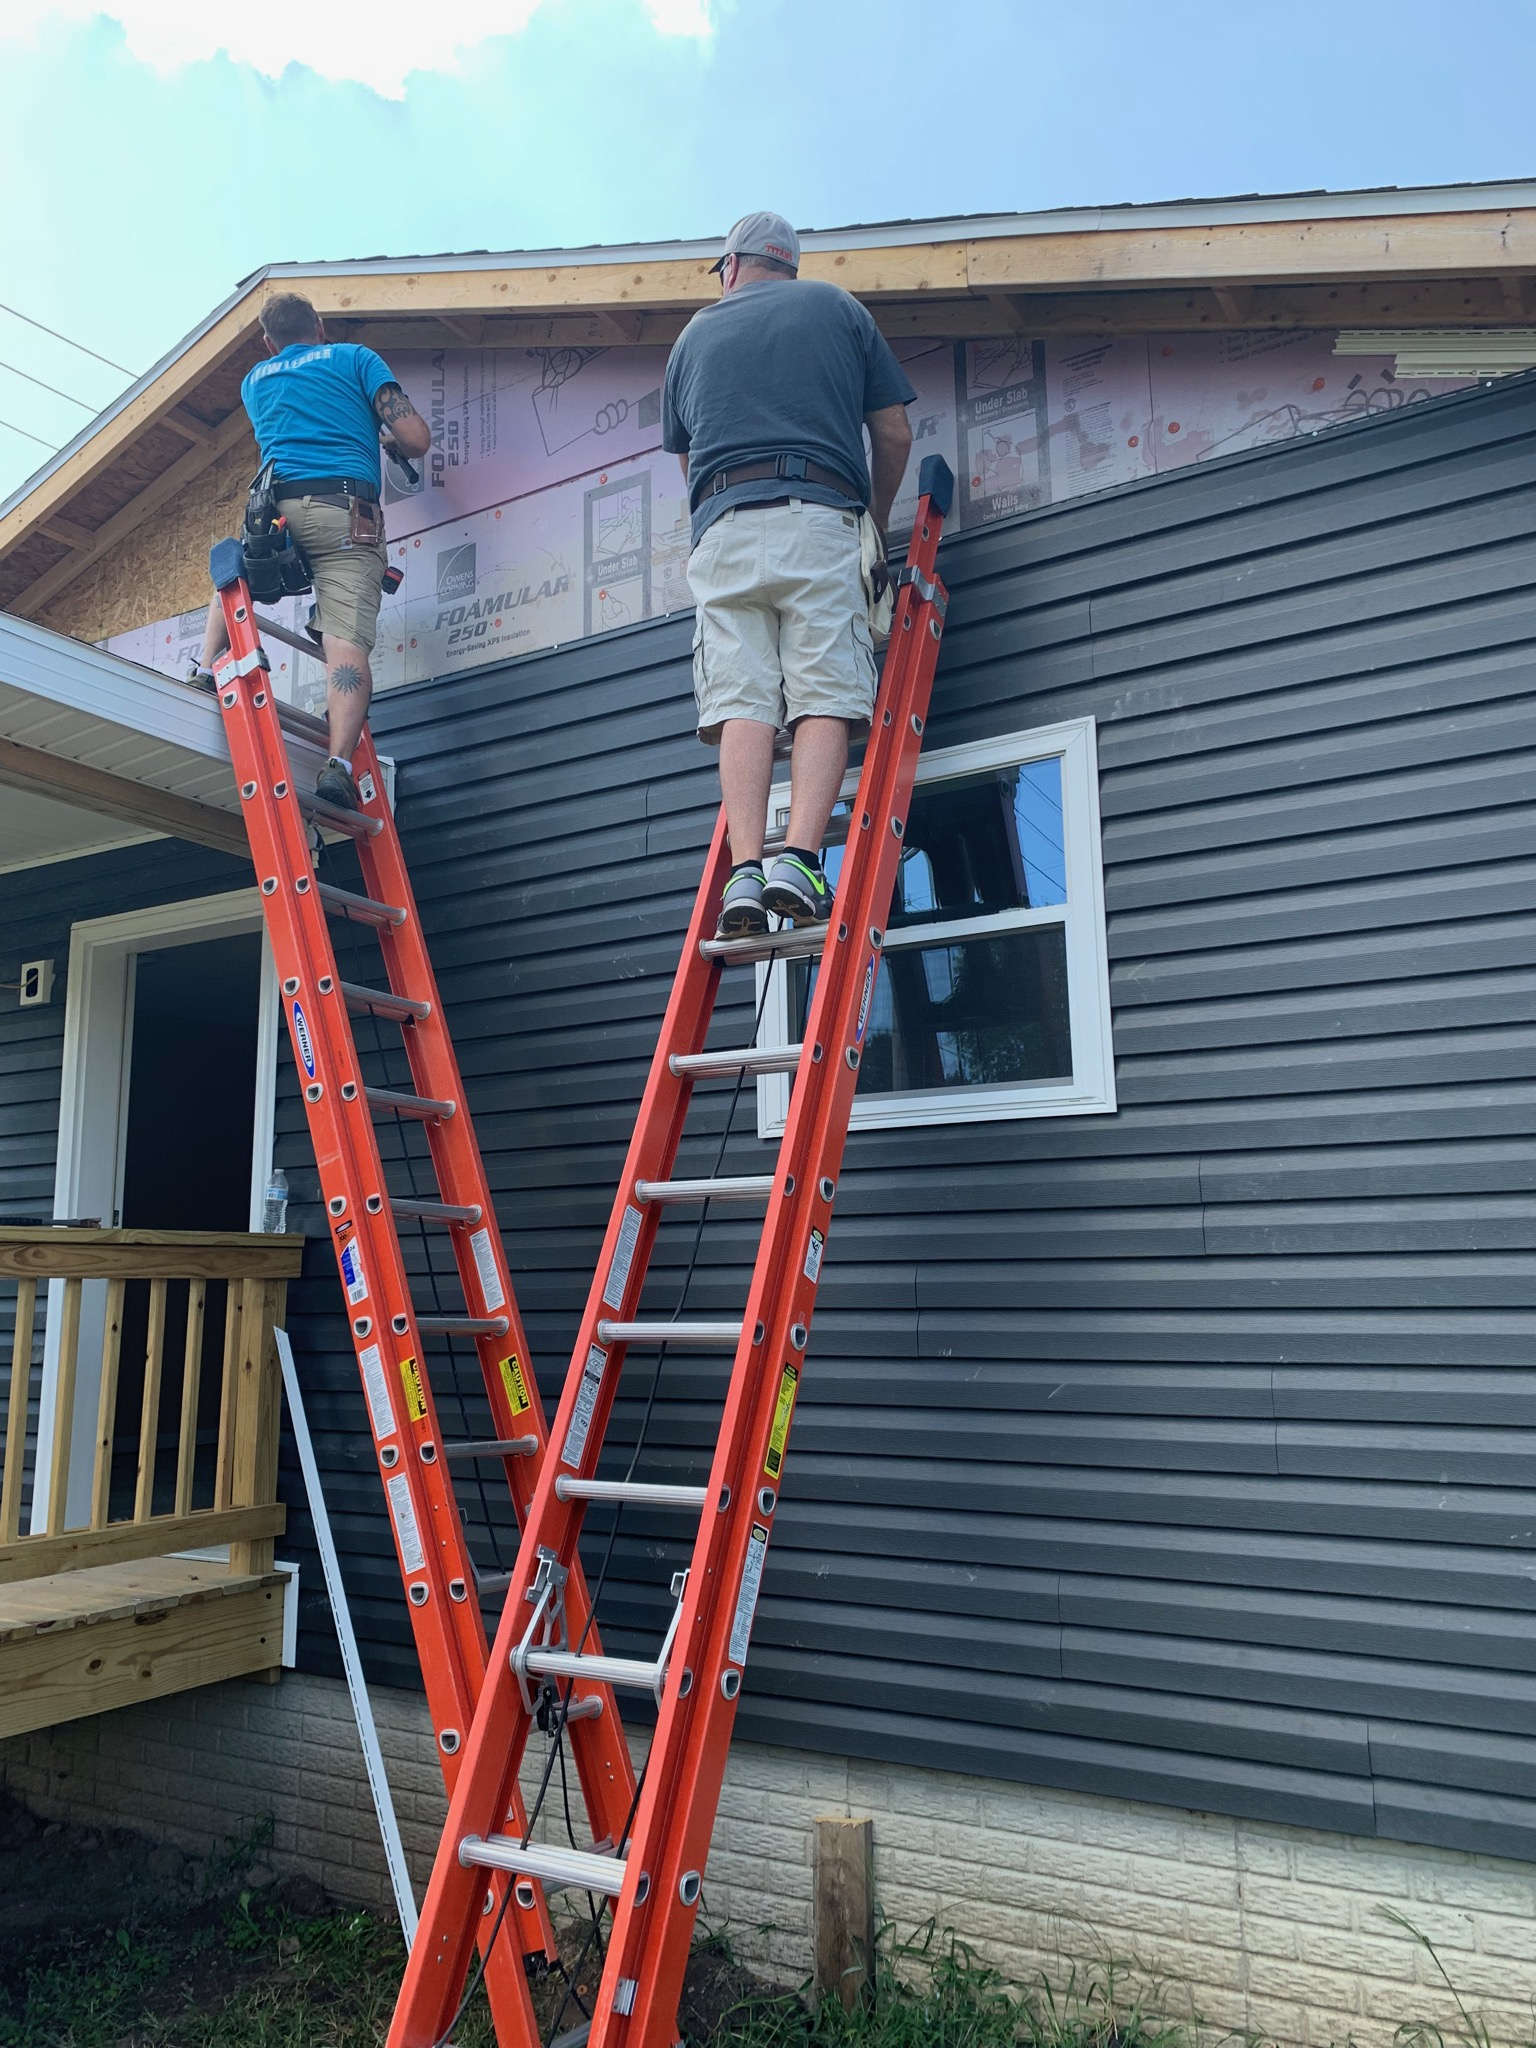 Siding being put up